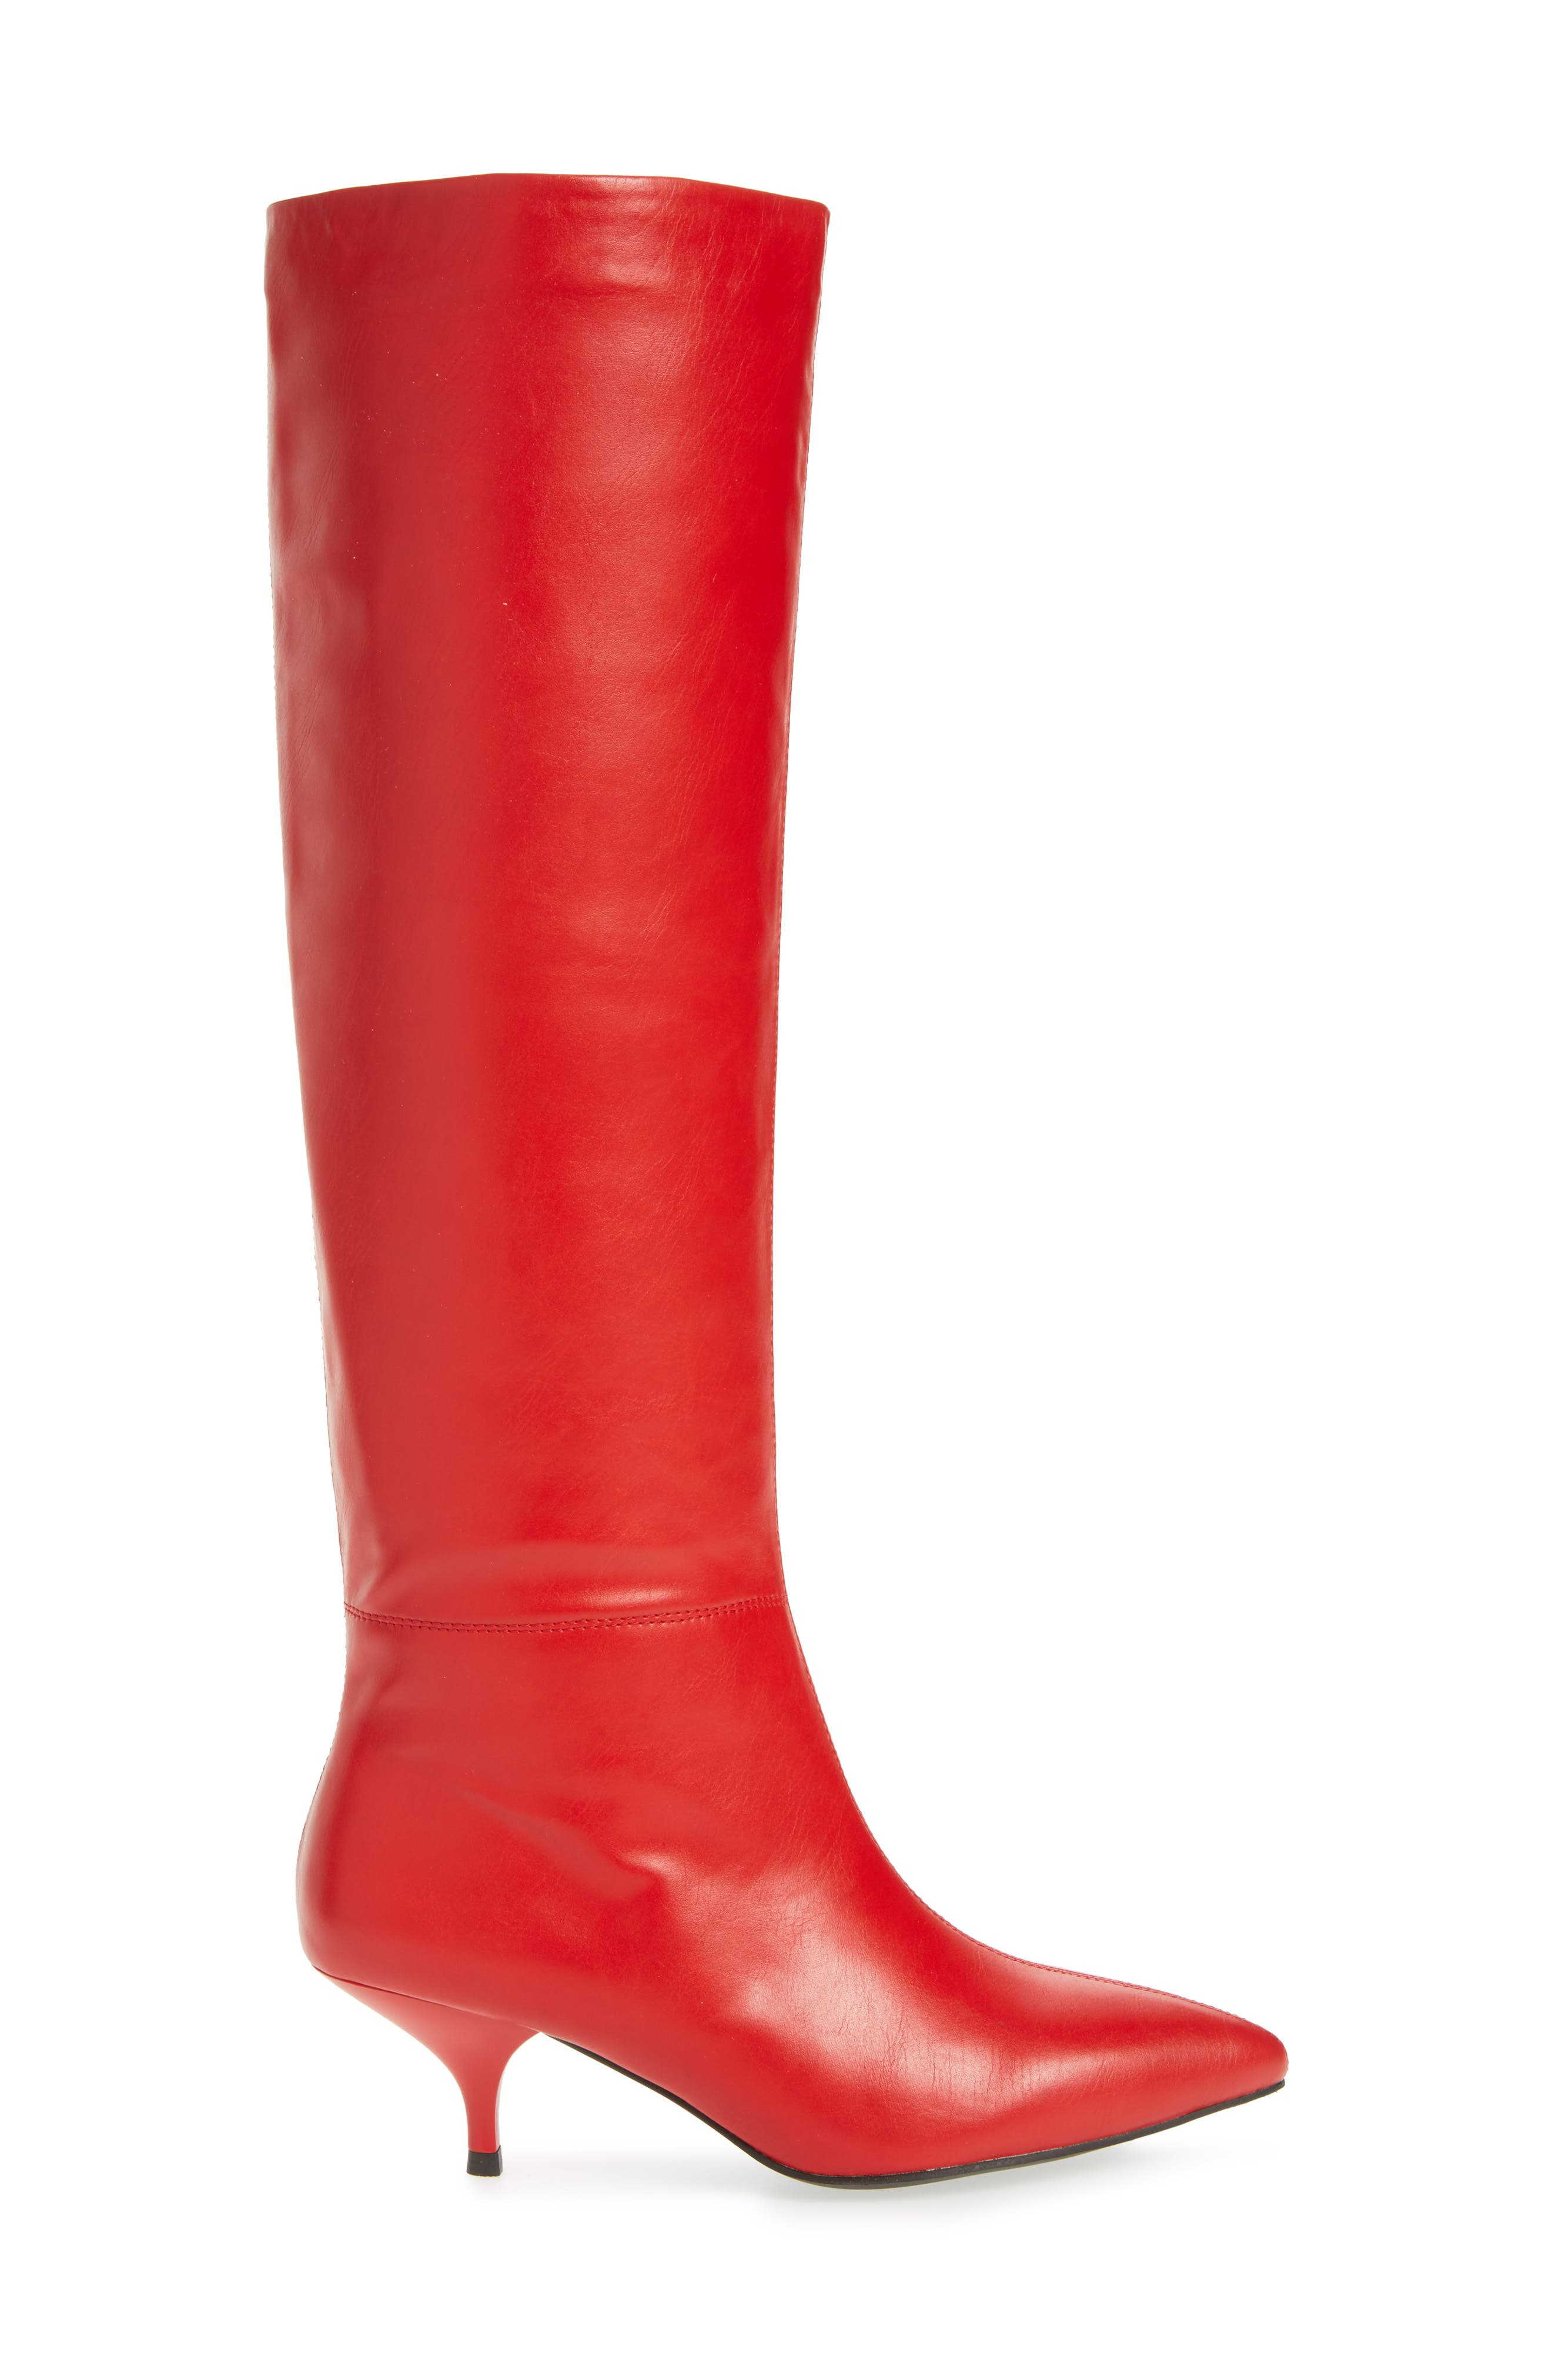 Germany Knee High Boot,                             Alternate thumbnail 3, color,                             Red